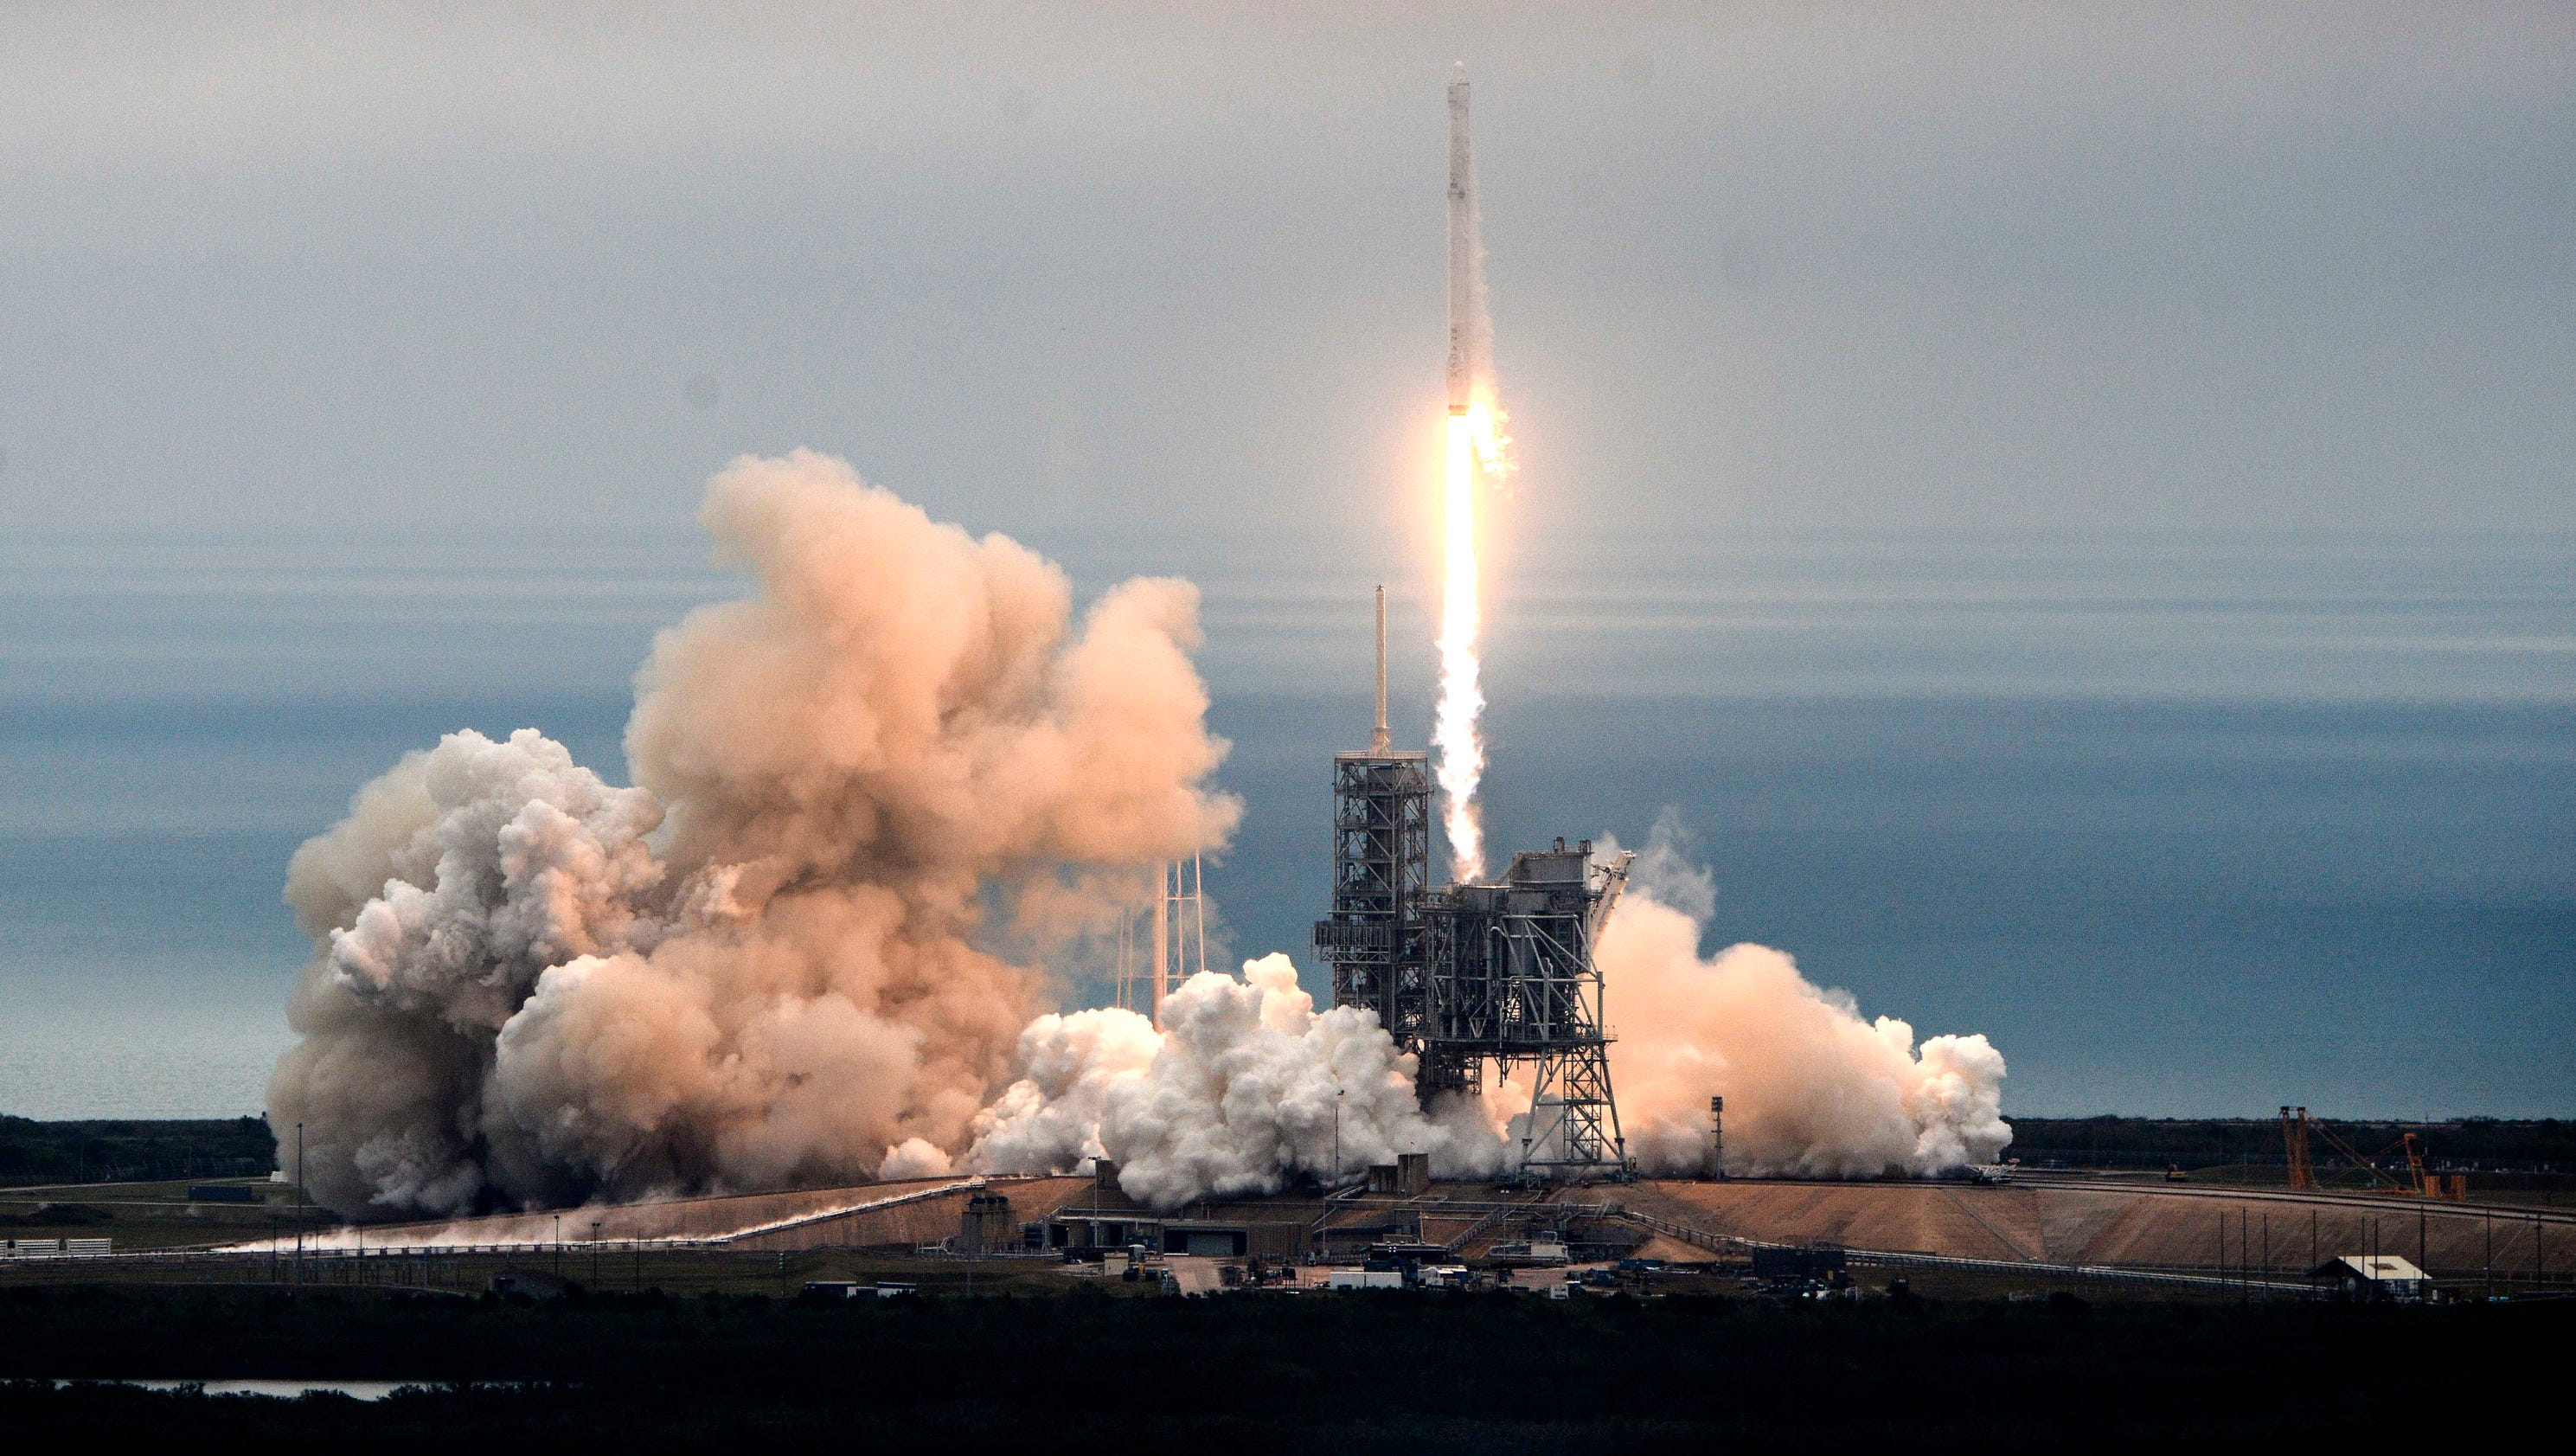 SpaceX Falcon 9 rocket launches from Cape Canaveral